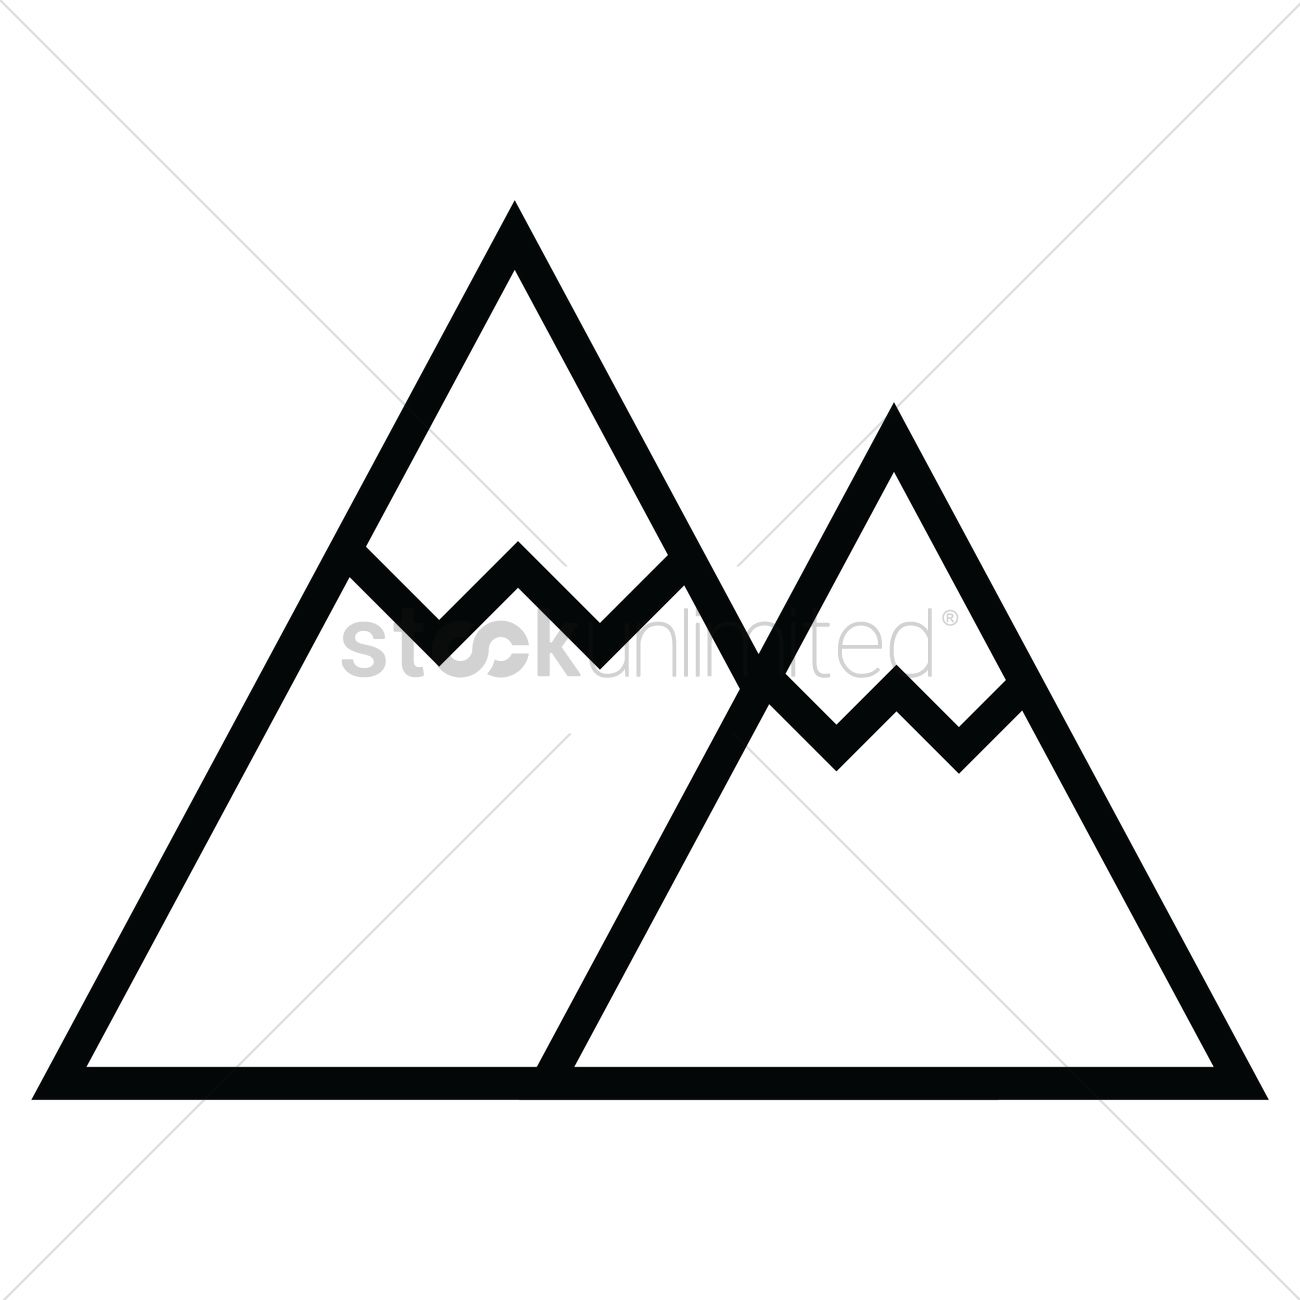 Mountains Vector Image - 1697562 | StockUnlimited